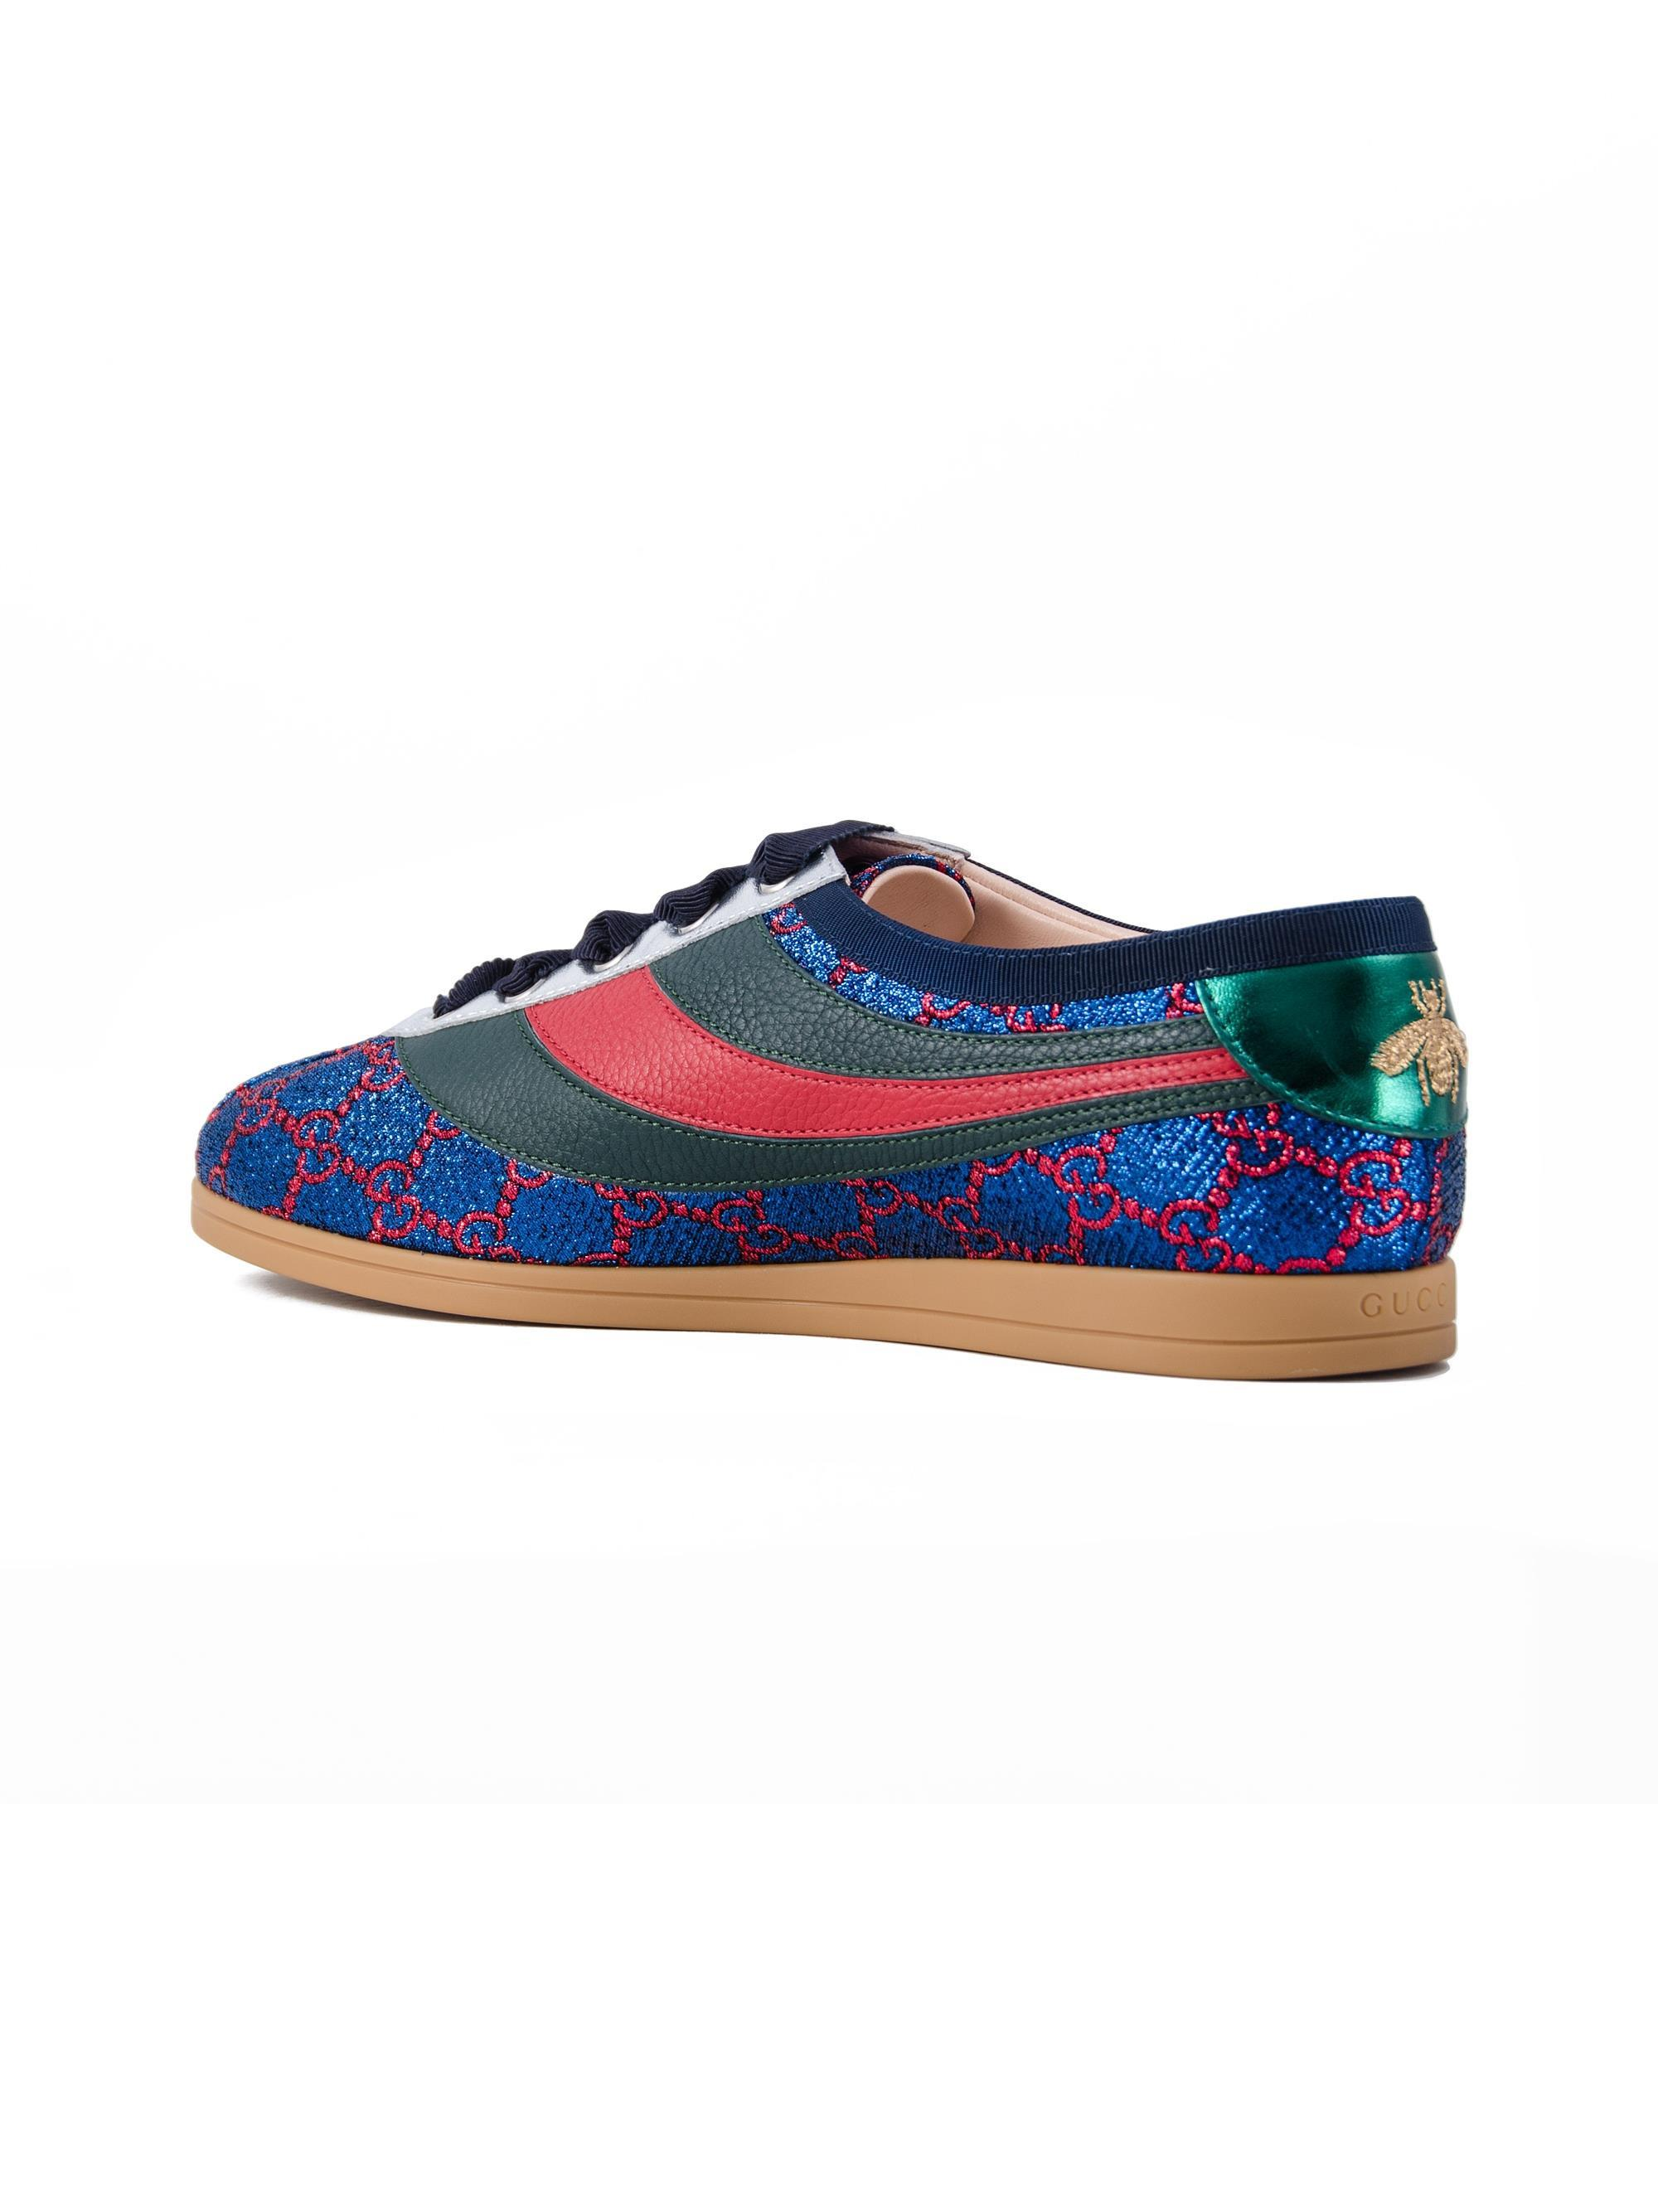 d1336896e5b Gucci - Blue Falacer Lurex GG Sneaker With Web - Lyst. View fullscreen